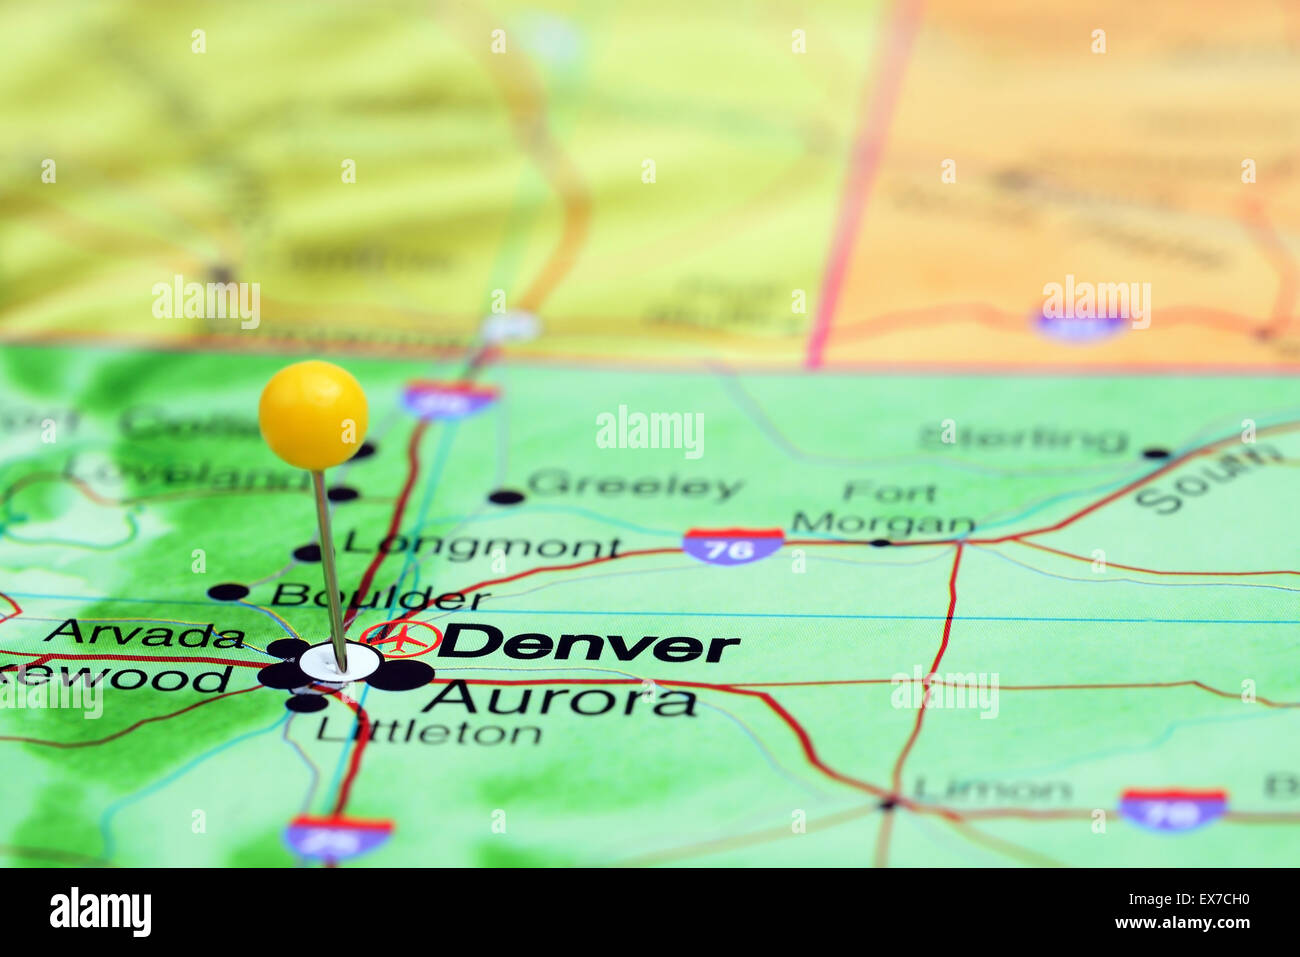 Denver pinned on a map of USA Stock Photo: 84986076 - Alamy on